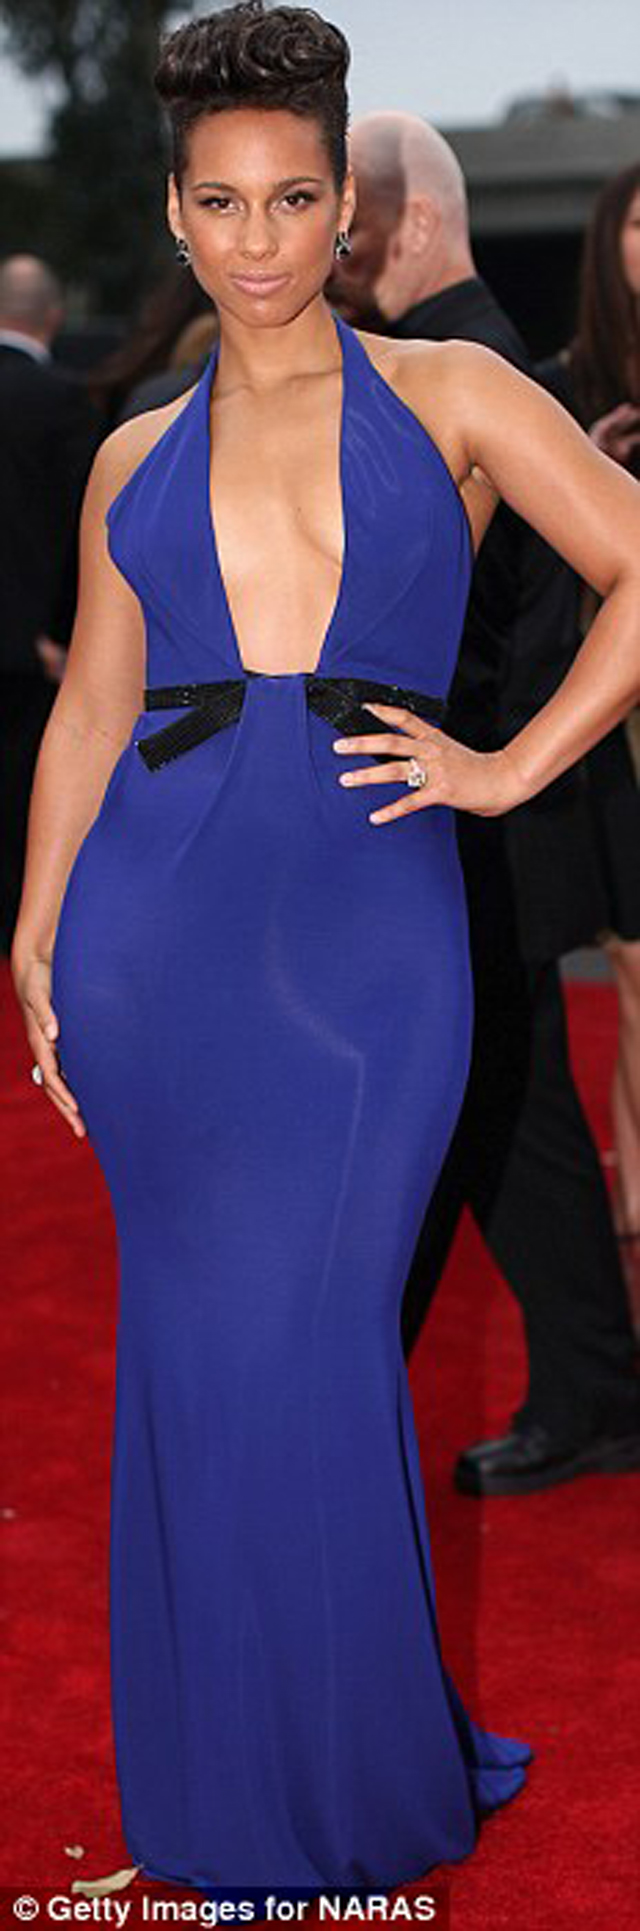 Alicia Keys sported an extremely plunging bright blue Armani Privé gown slashed to her navel